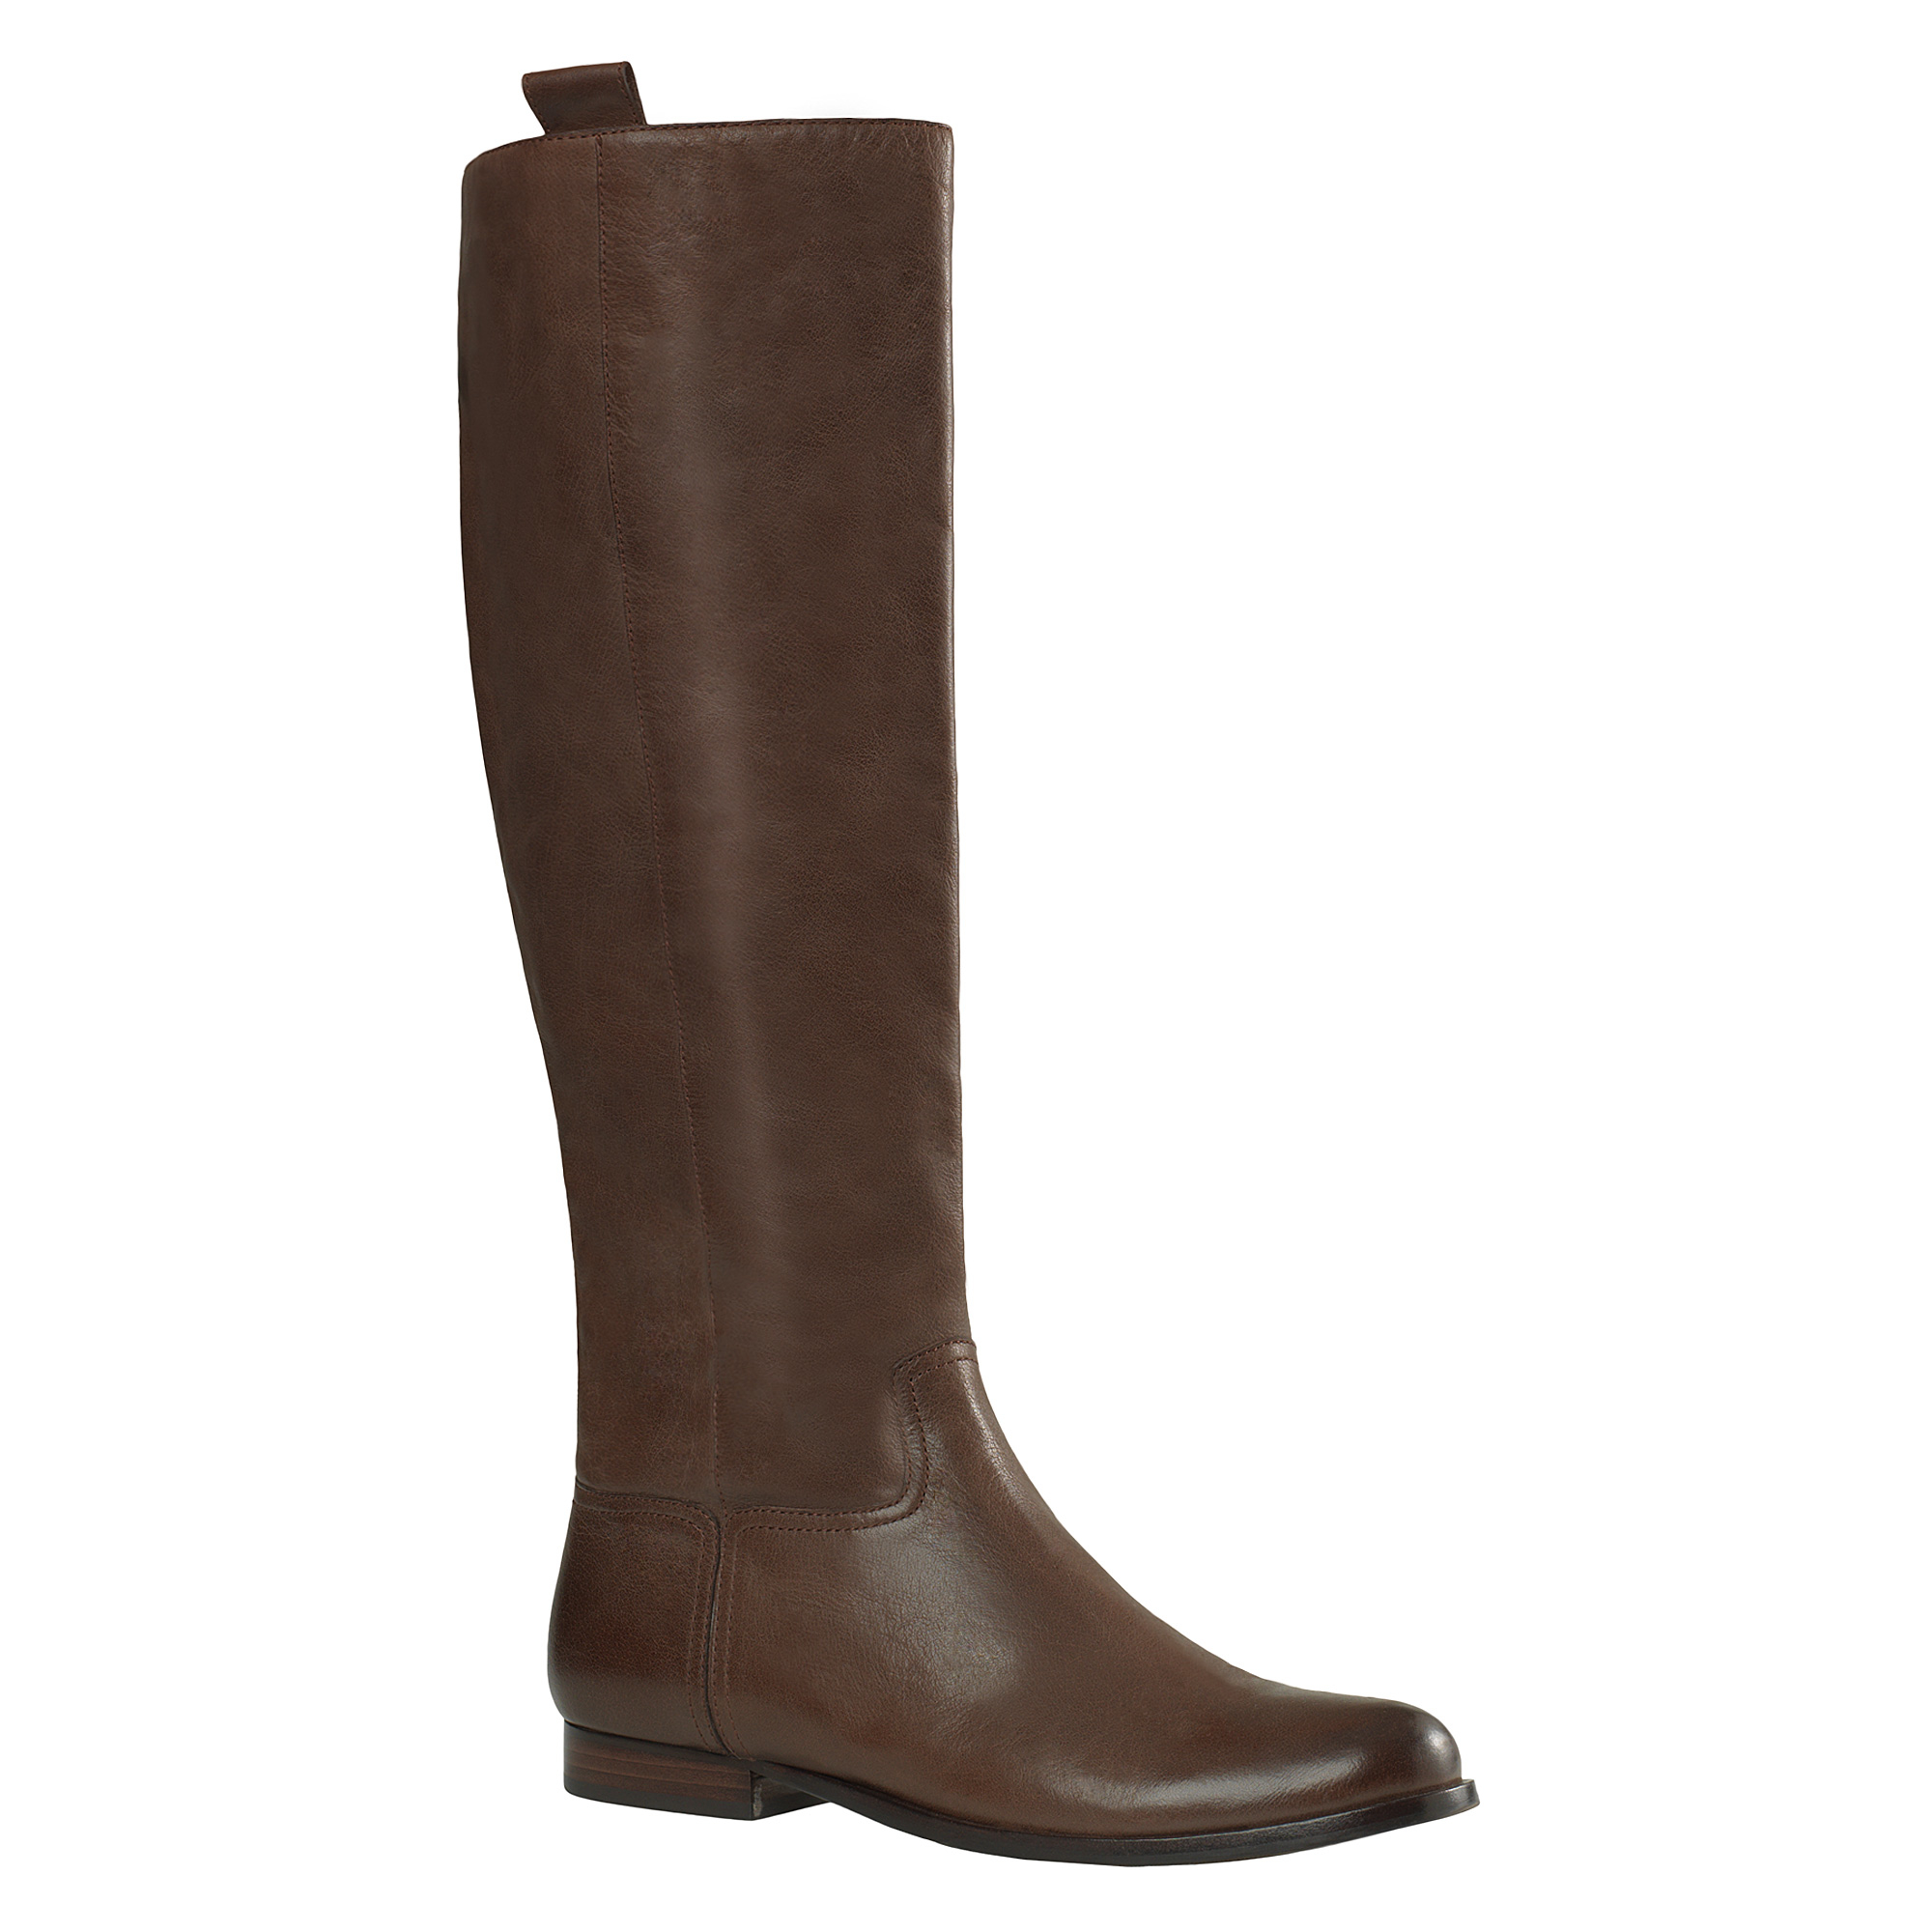 Our wide assortment ranges from casual styles to waterproof, insulated boots for.